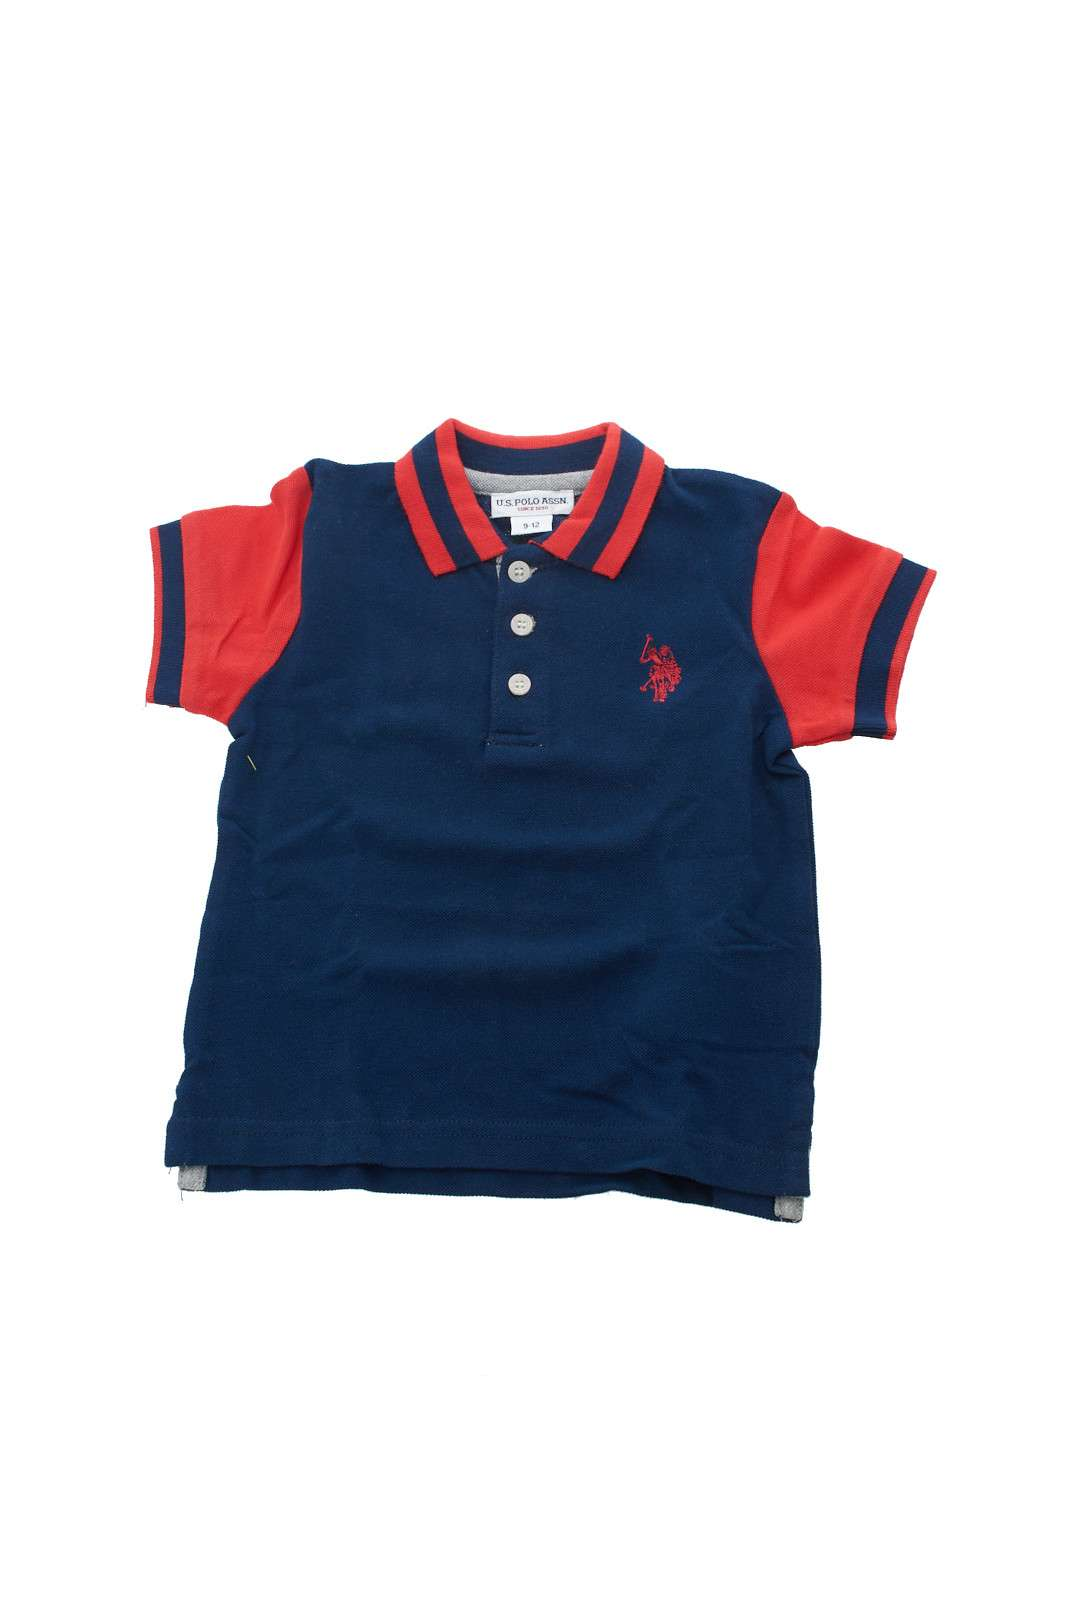 https://www.parmax.com/media/catalog/product/a/i/PE-outlet_parmax-polo-bambino-Us-Polo-38928-A.jpg